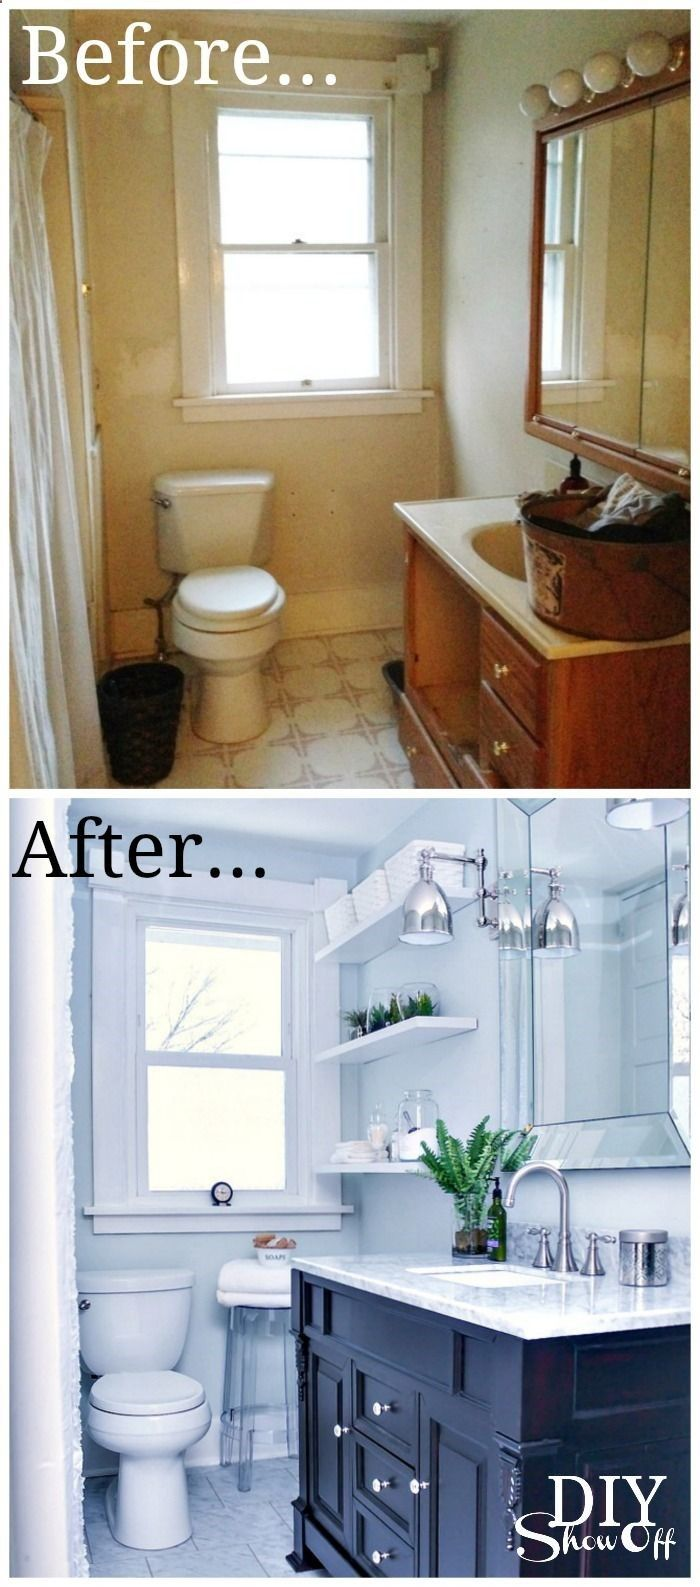 Bathroom Before and After - DIY Show Off - DIY Decorating and Home ...